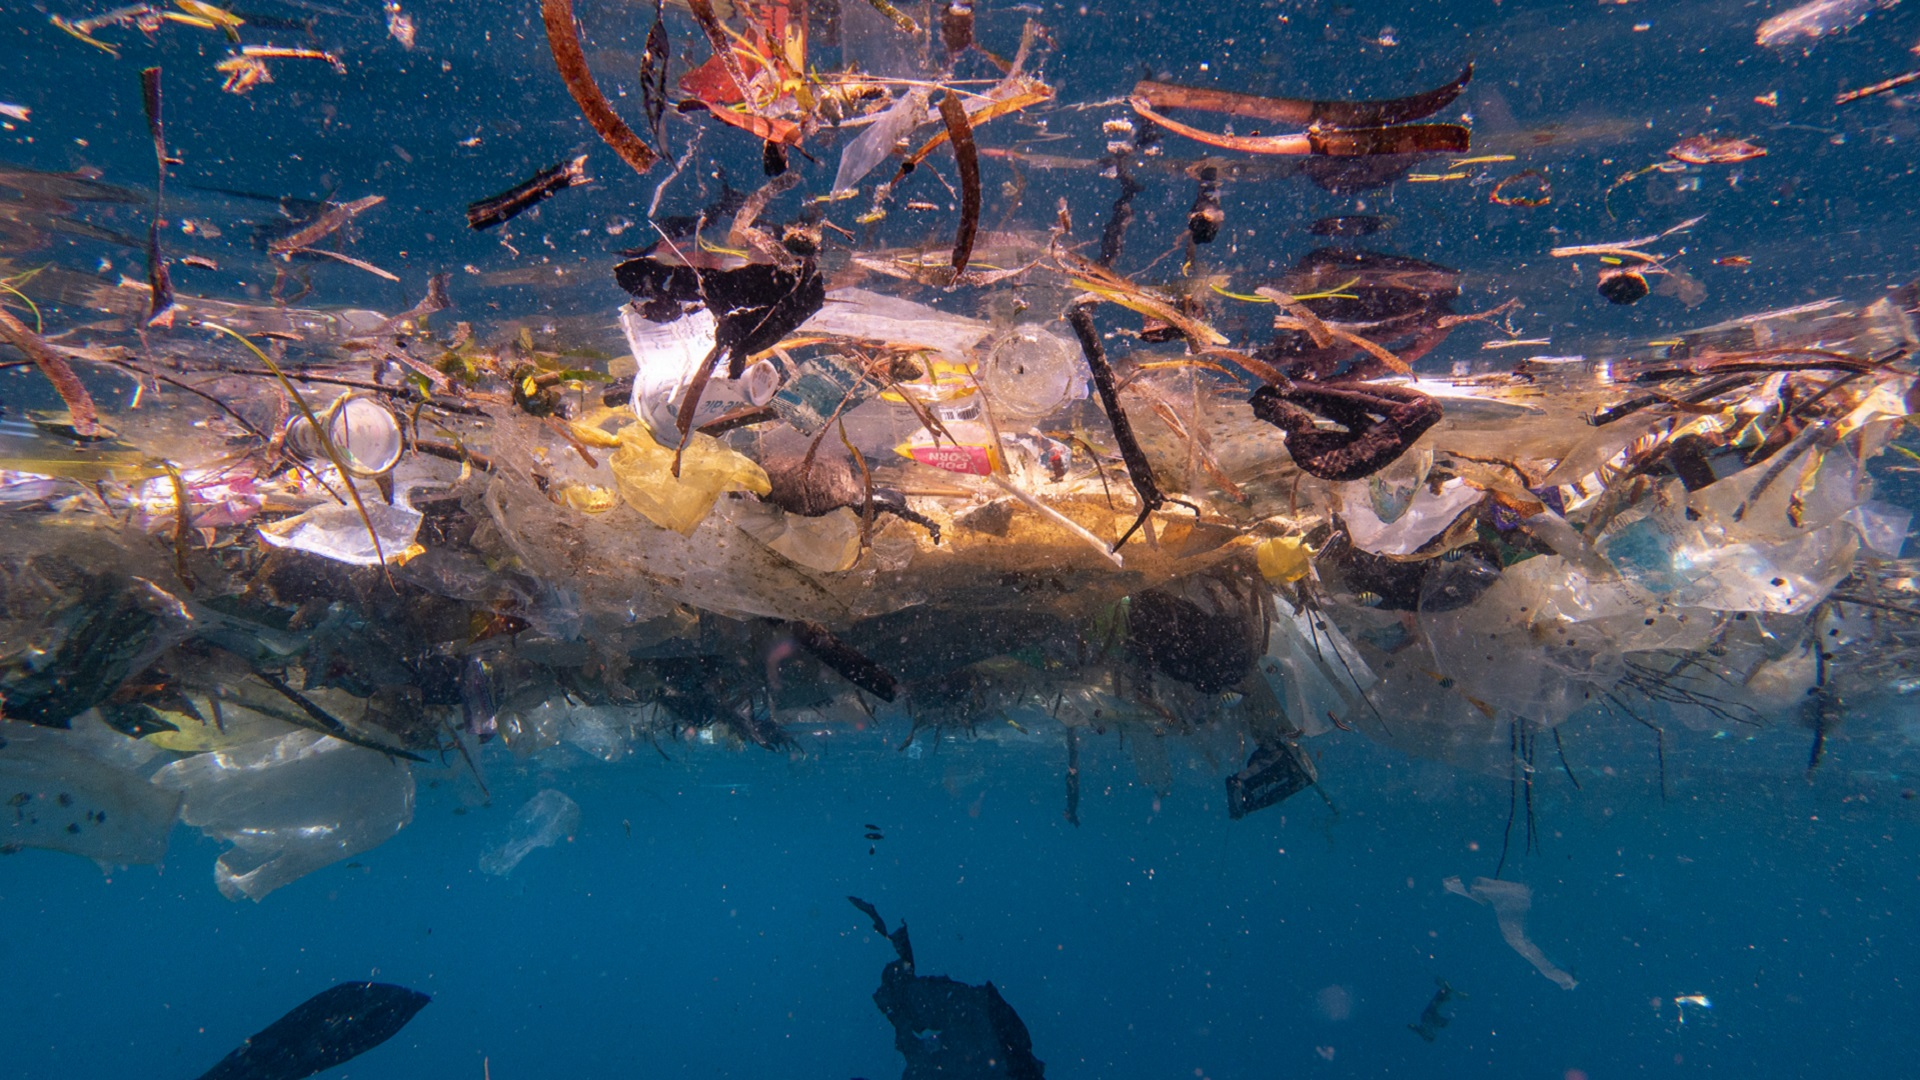 Researchers estimate up to 14 million tonnes of microplastics lie on the seafloor